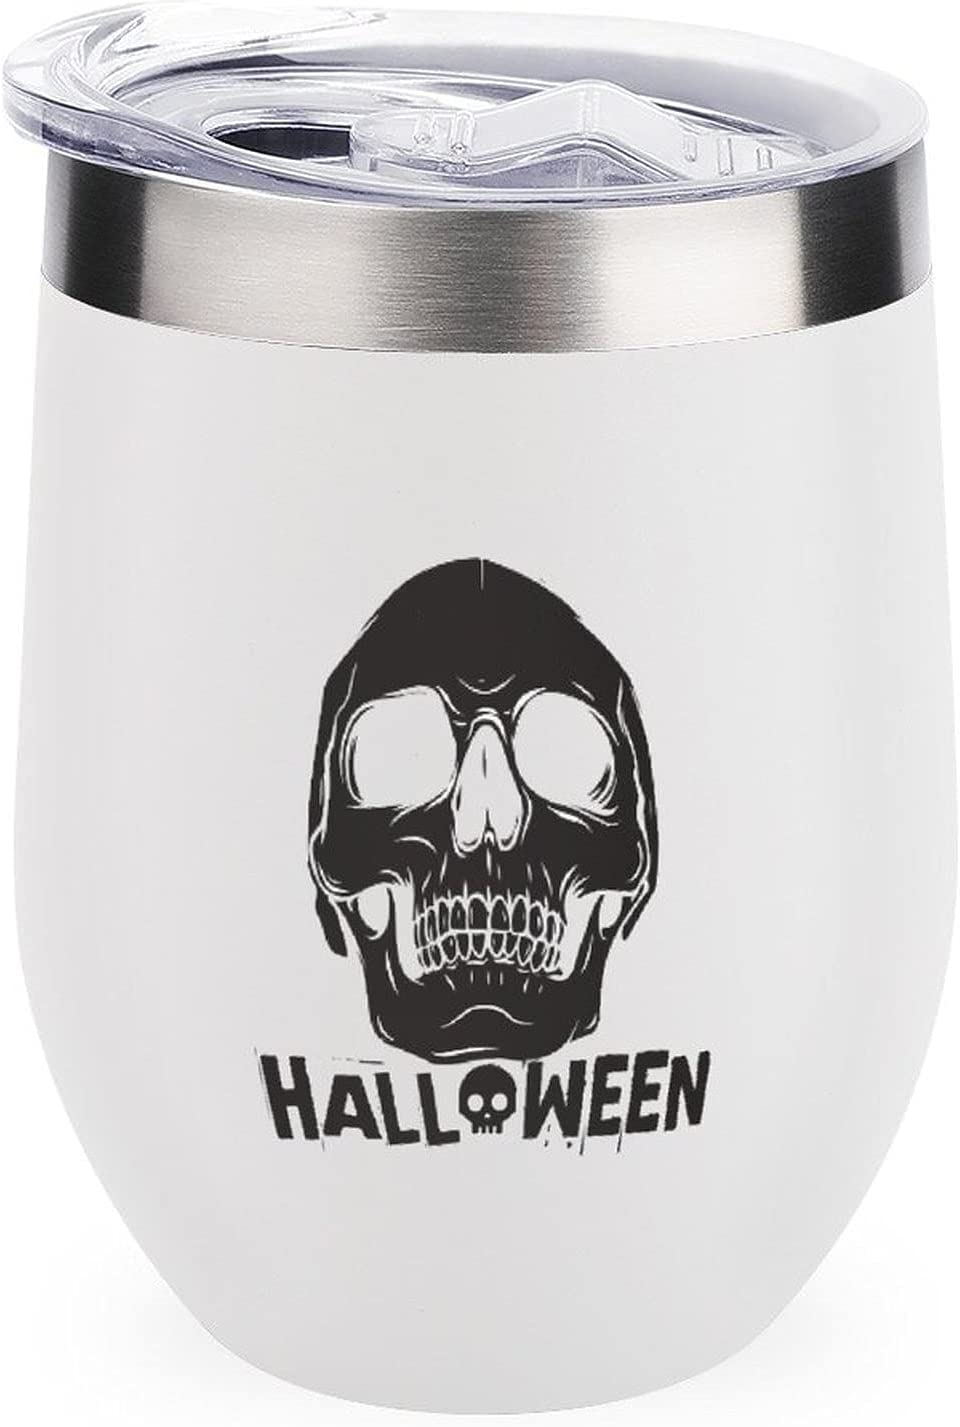 Anyuwerw Max 54% OFF Insulated Wine Tumbler with Tumblers Lid 12o New life Skull